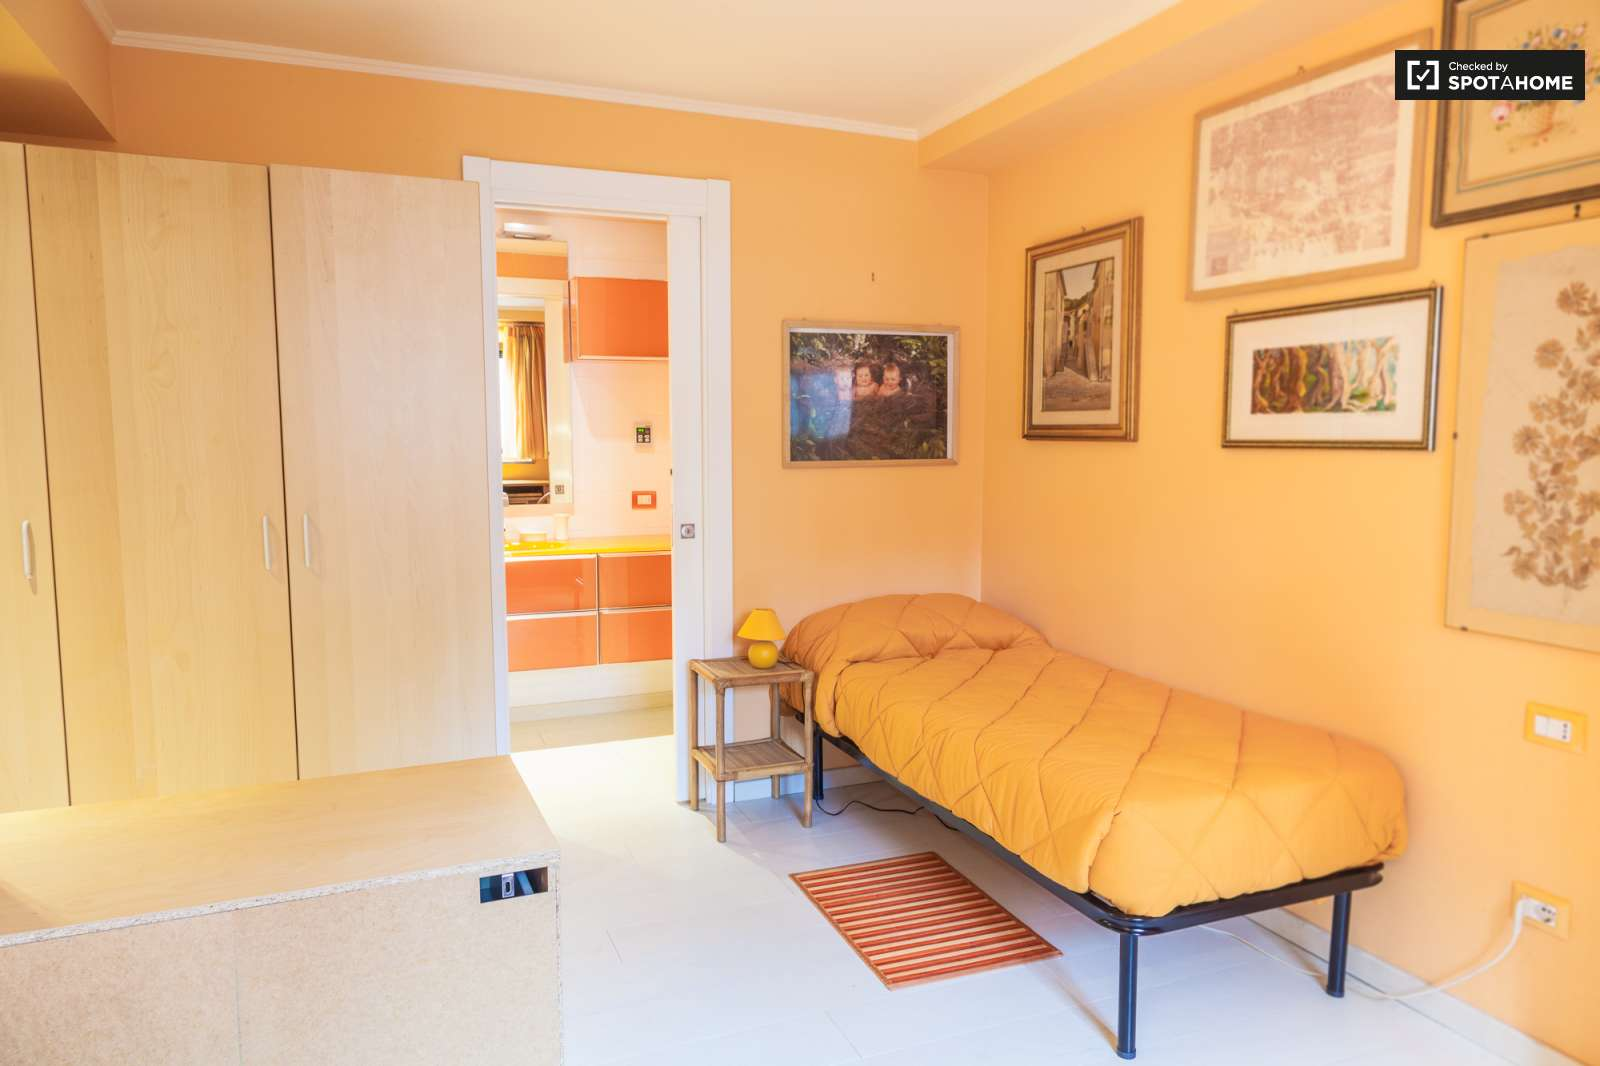 Furnished room in 2 bedroom apartment in rome ref 90110 for Furnished room